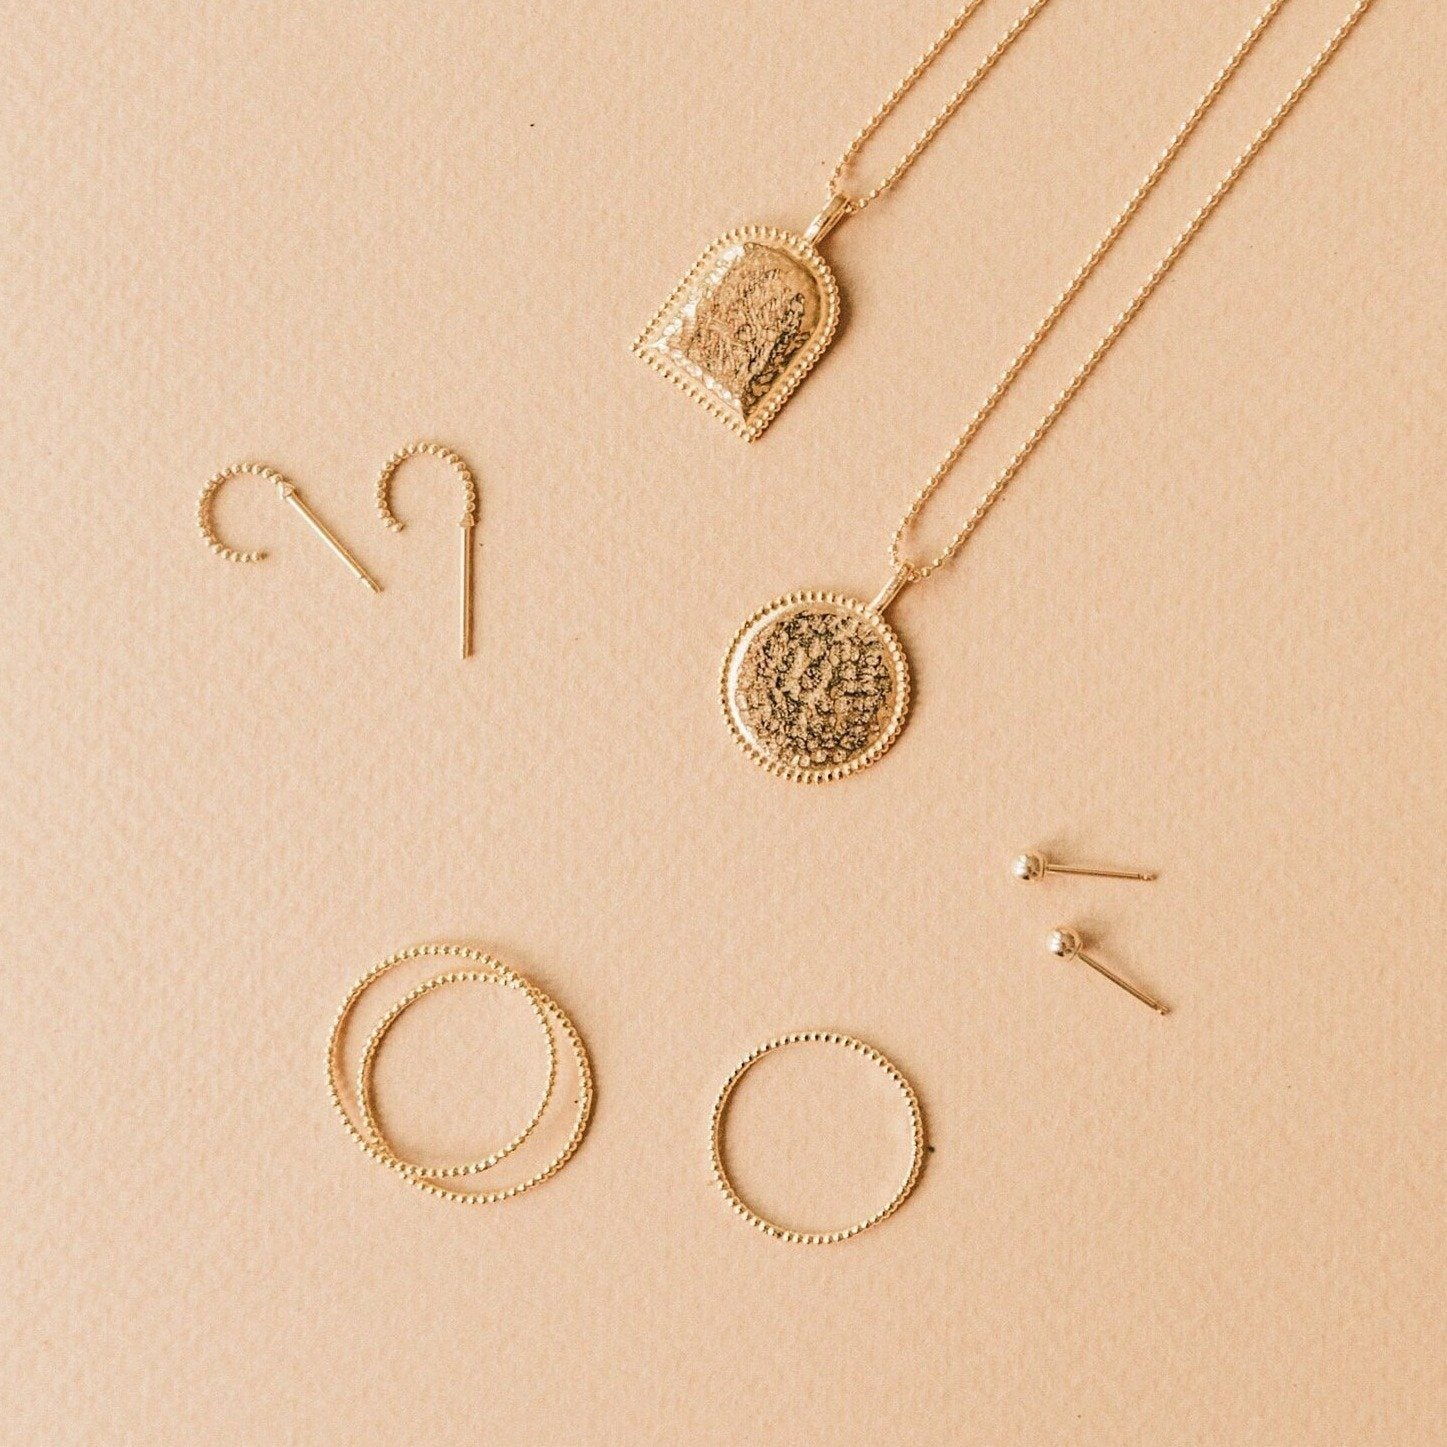 Beaded Coin Necklace, Beaded Arch Necklace, Beaded Rings and Beaded Hoop Earrings laying on a light brown background.